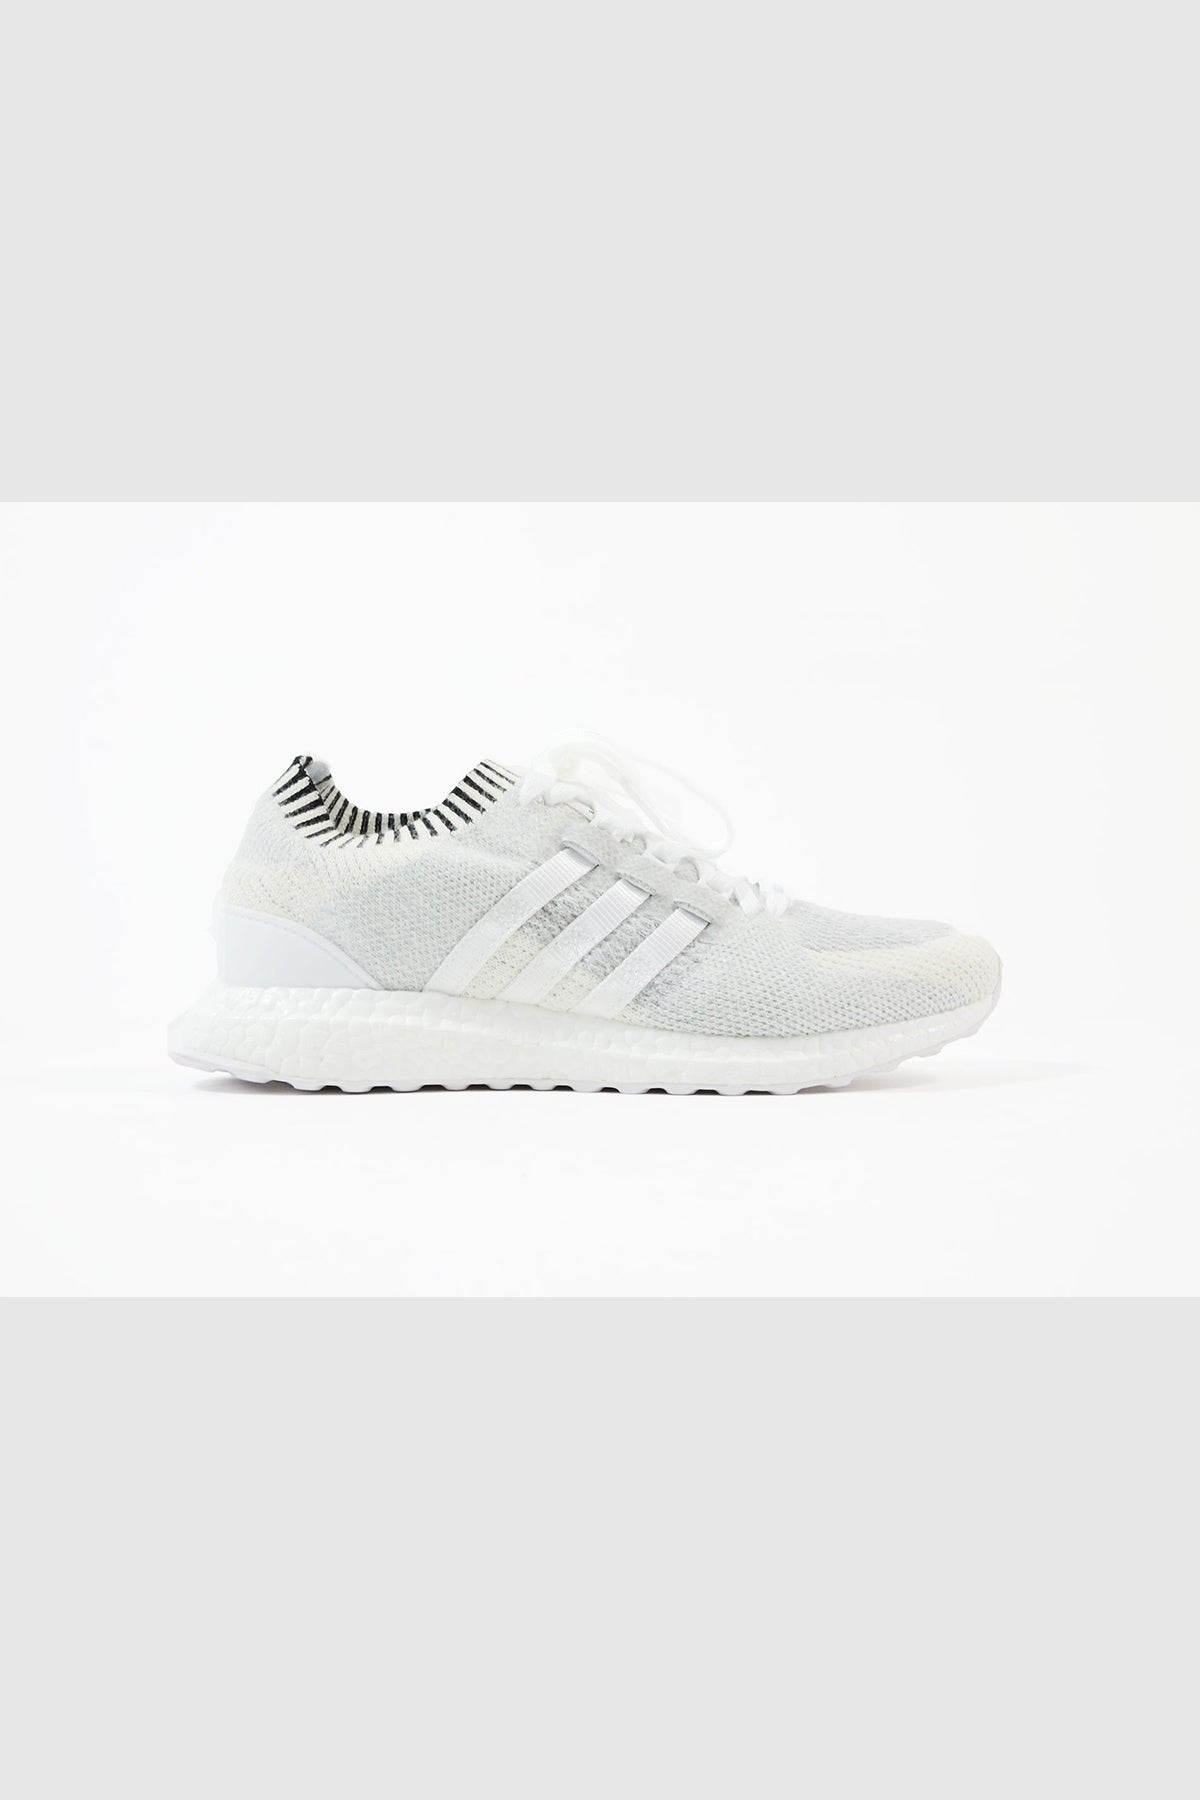 Adidas - EQT Support Ultra PK (White/ Black)